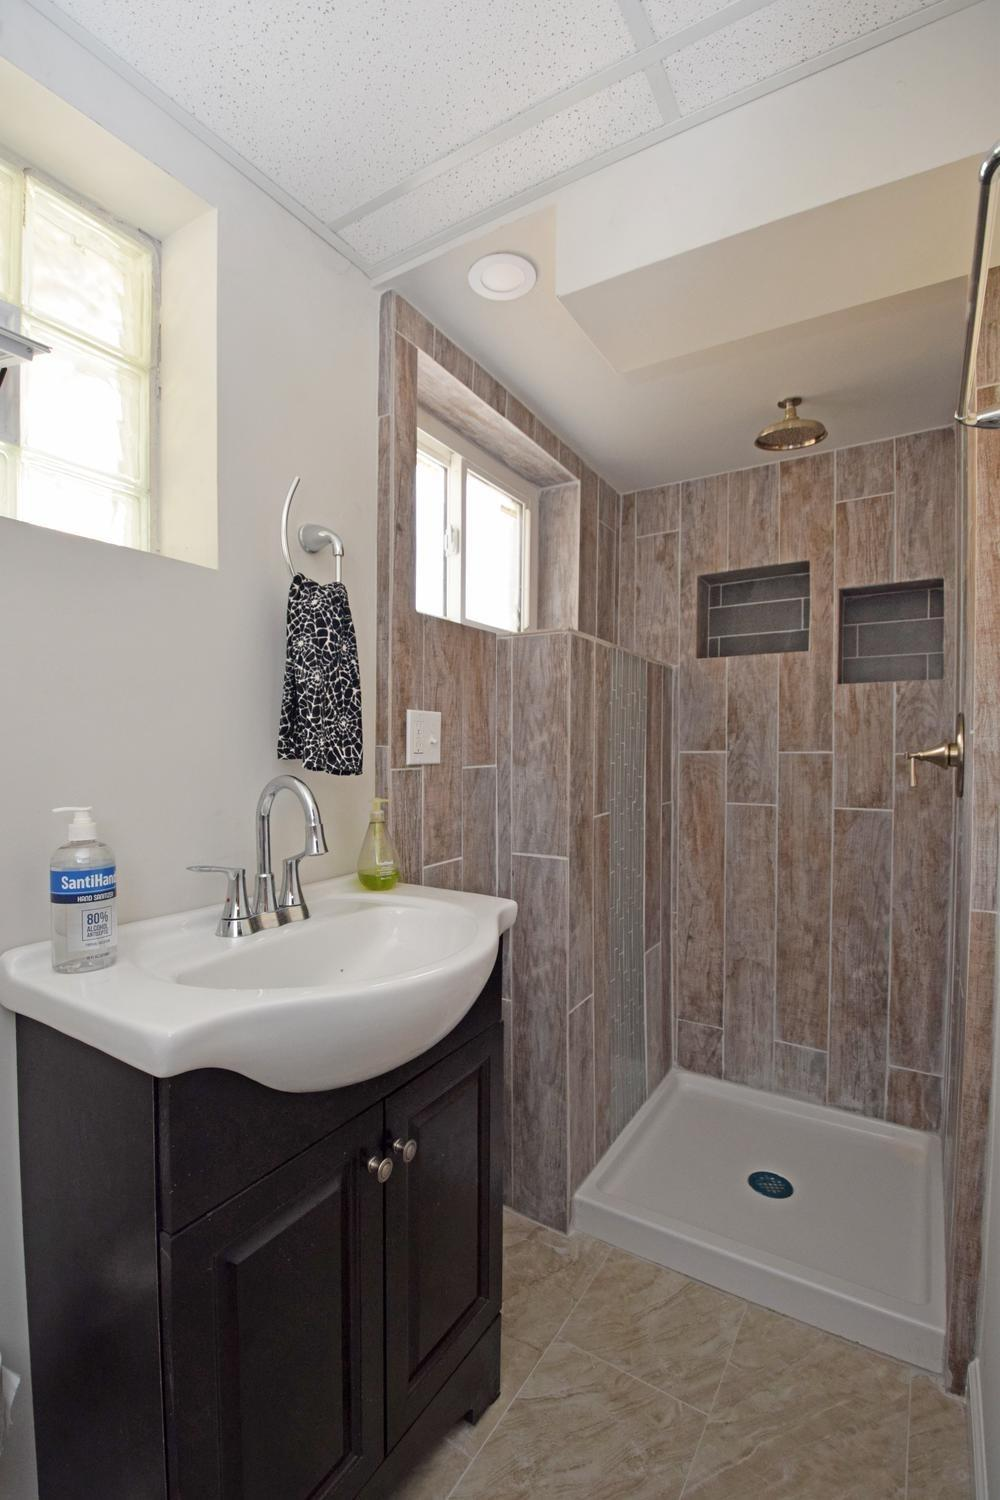 Lower Level Bathroom with new Shower, Vanity, Commode and Flooring